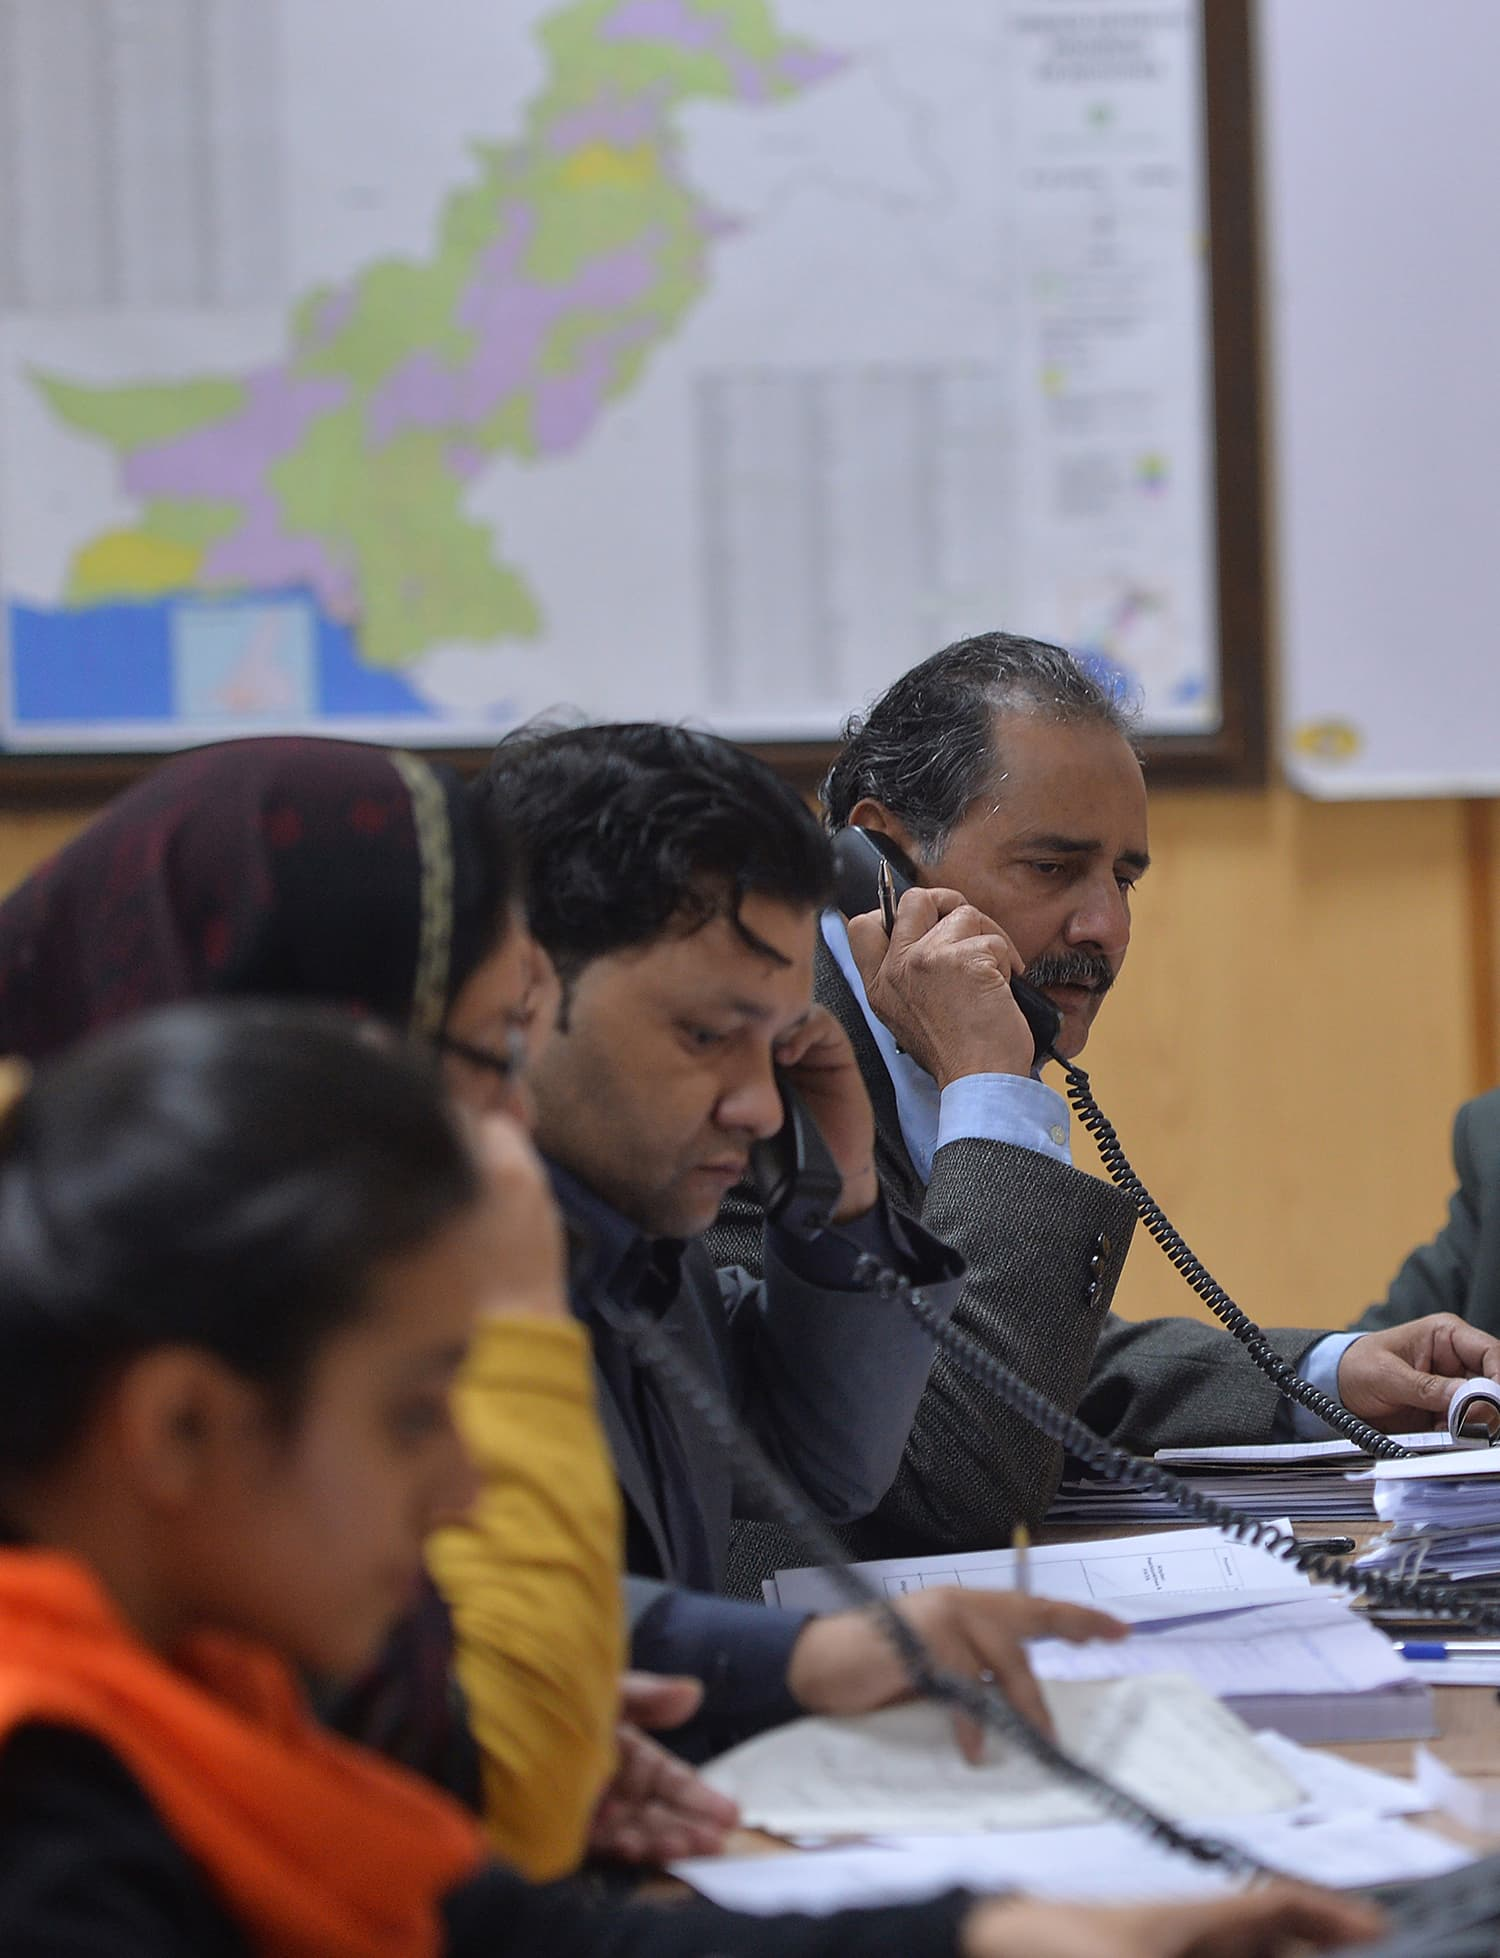 Pakistani employees of Pakistan Bureau of Statistics and the headquarters of Population Census 2017, speak on public helplines to give information about census in Islamabad. — AFP